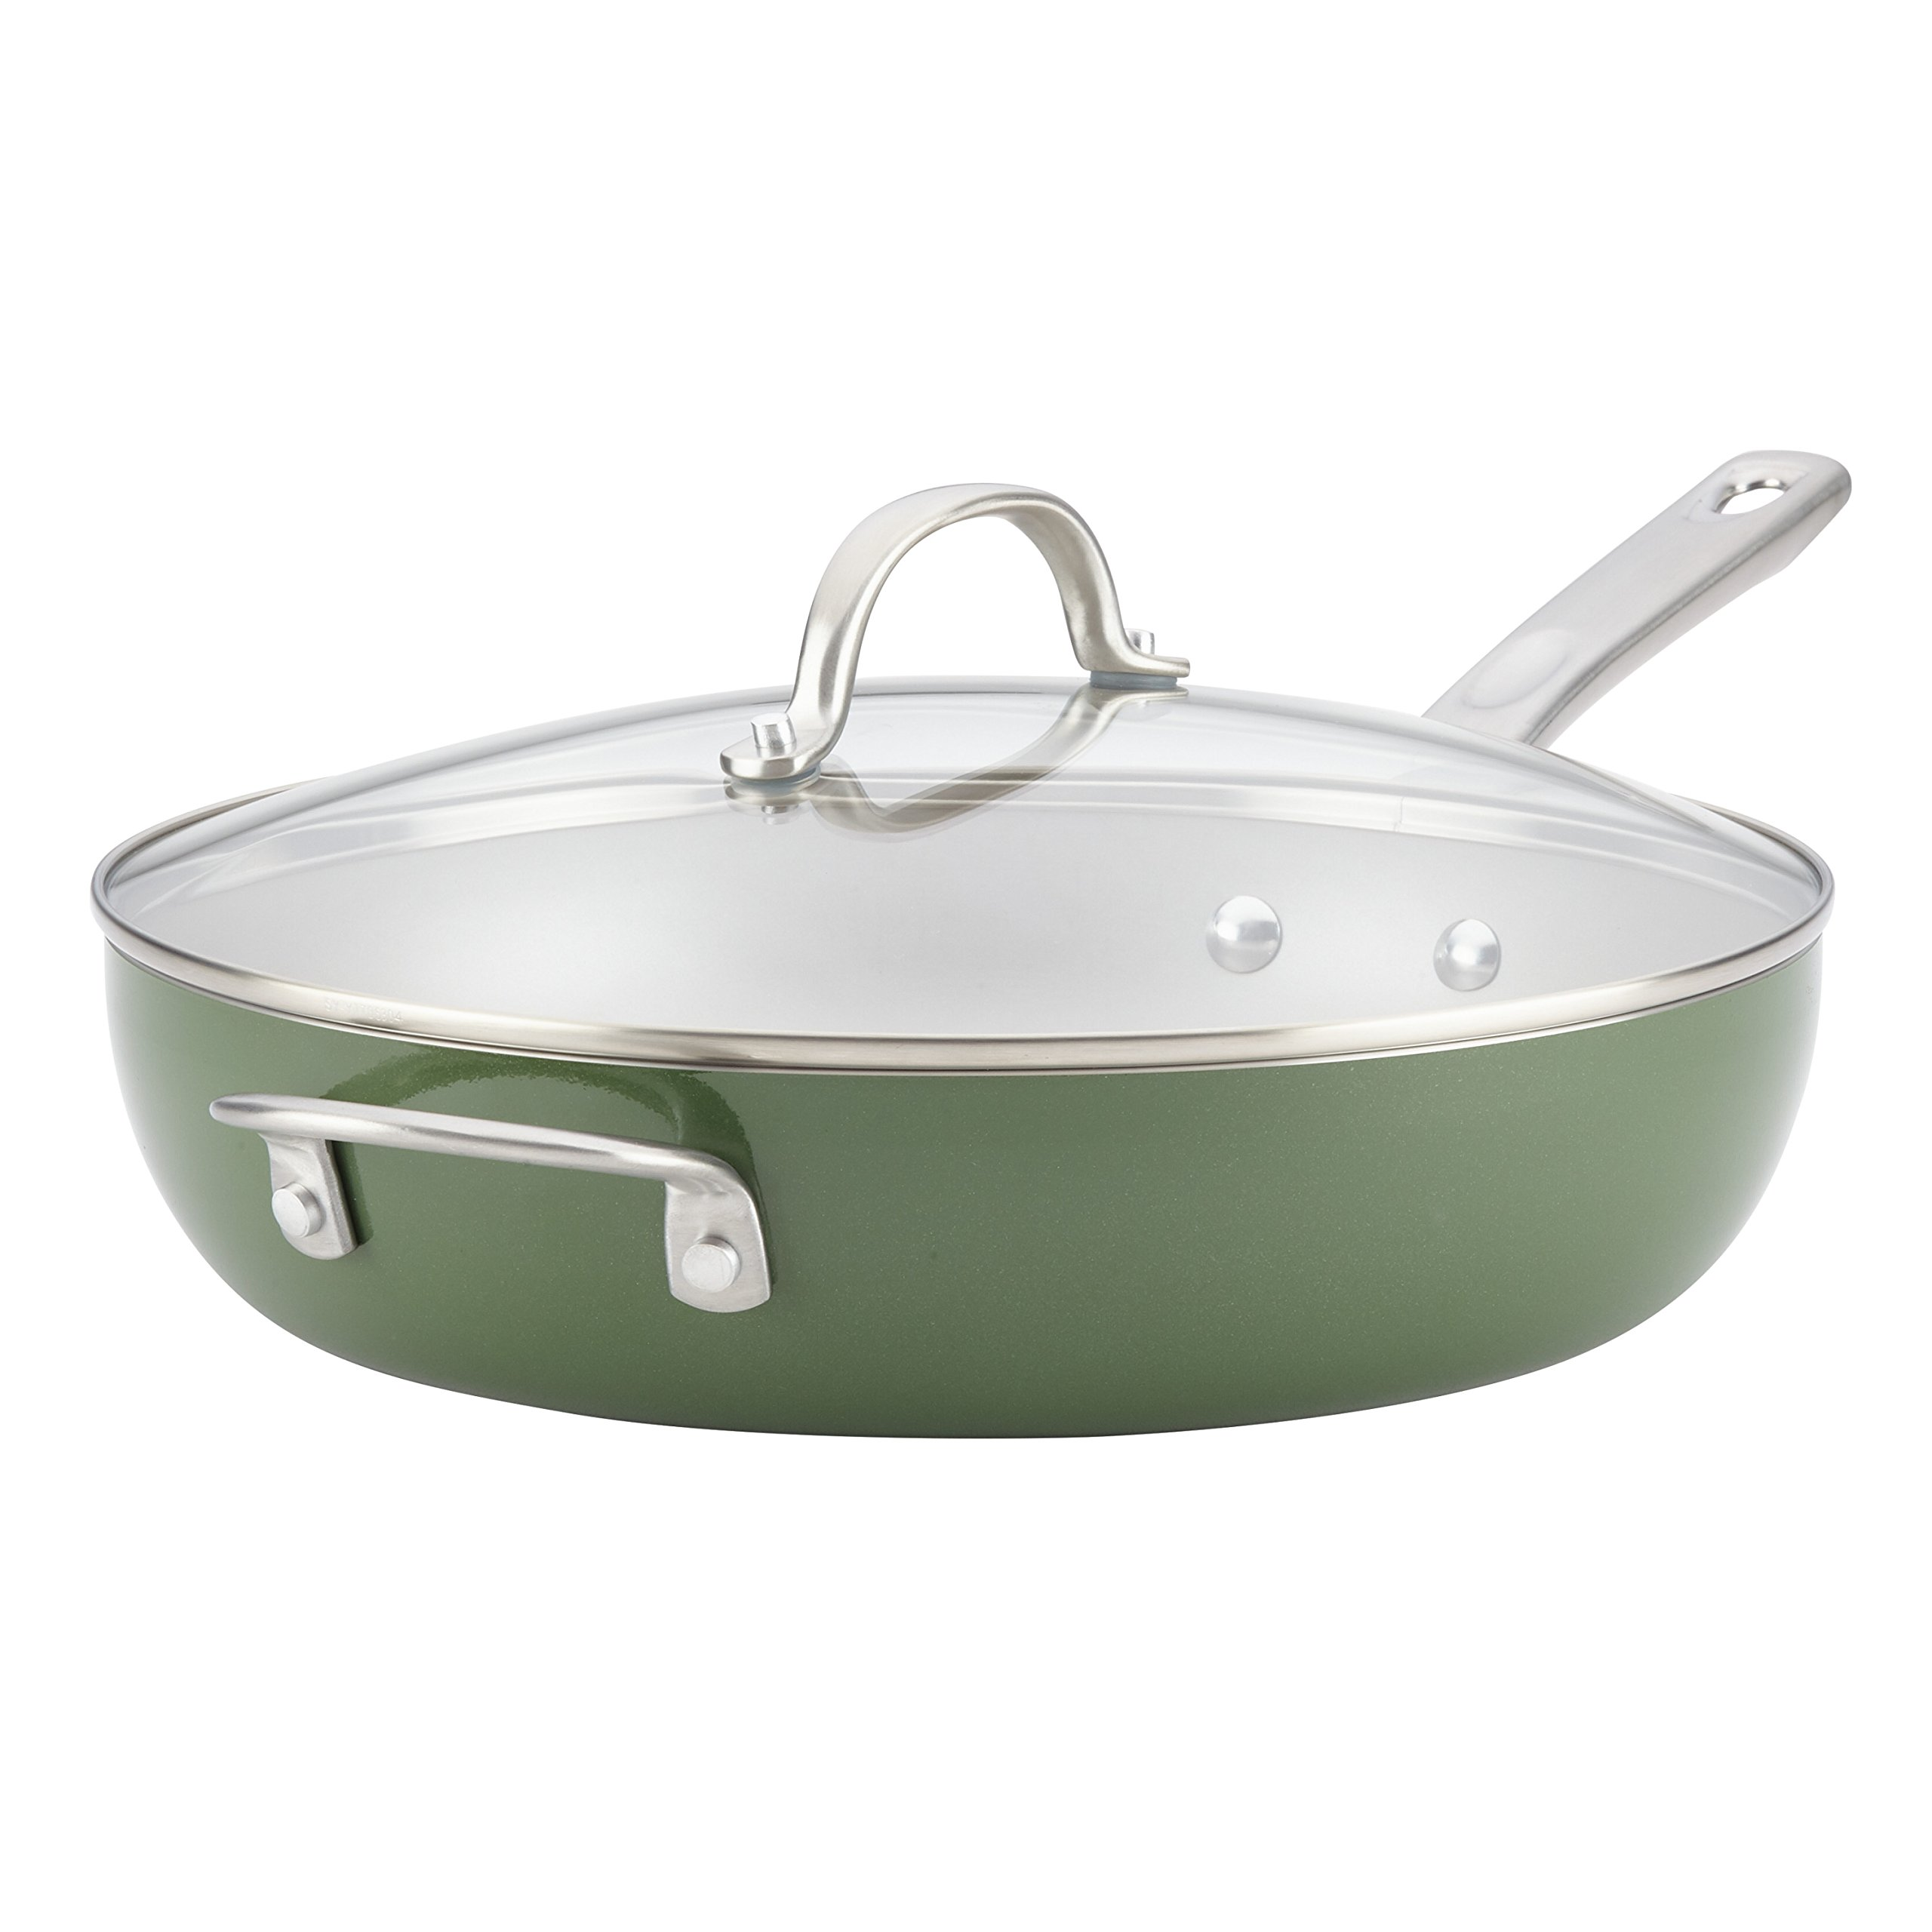 Ayesha Curry 10380 Home Collection Deep Skillet, 12'', Basil Green